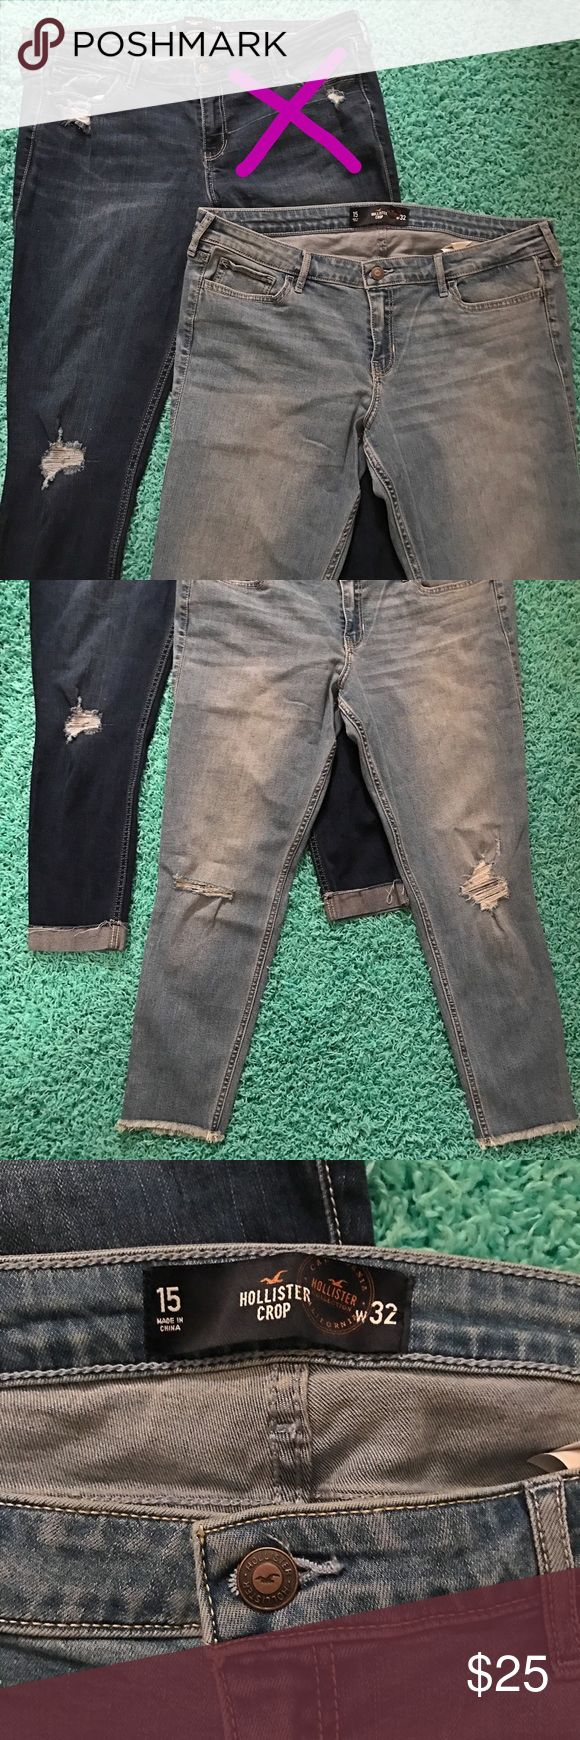 hollister™ crop skinny jeans. 💕 ➽ hollister™ crop skinny jeans. ➽ women's size 15 (w 32). ➽ color: light washed. ➽ low rise, crop, skinny. ➽ NWOT, NEVER BEEN WORN. ➽ perfect condition, 10/10. Hollister Jeans Skinny